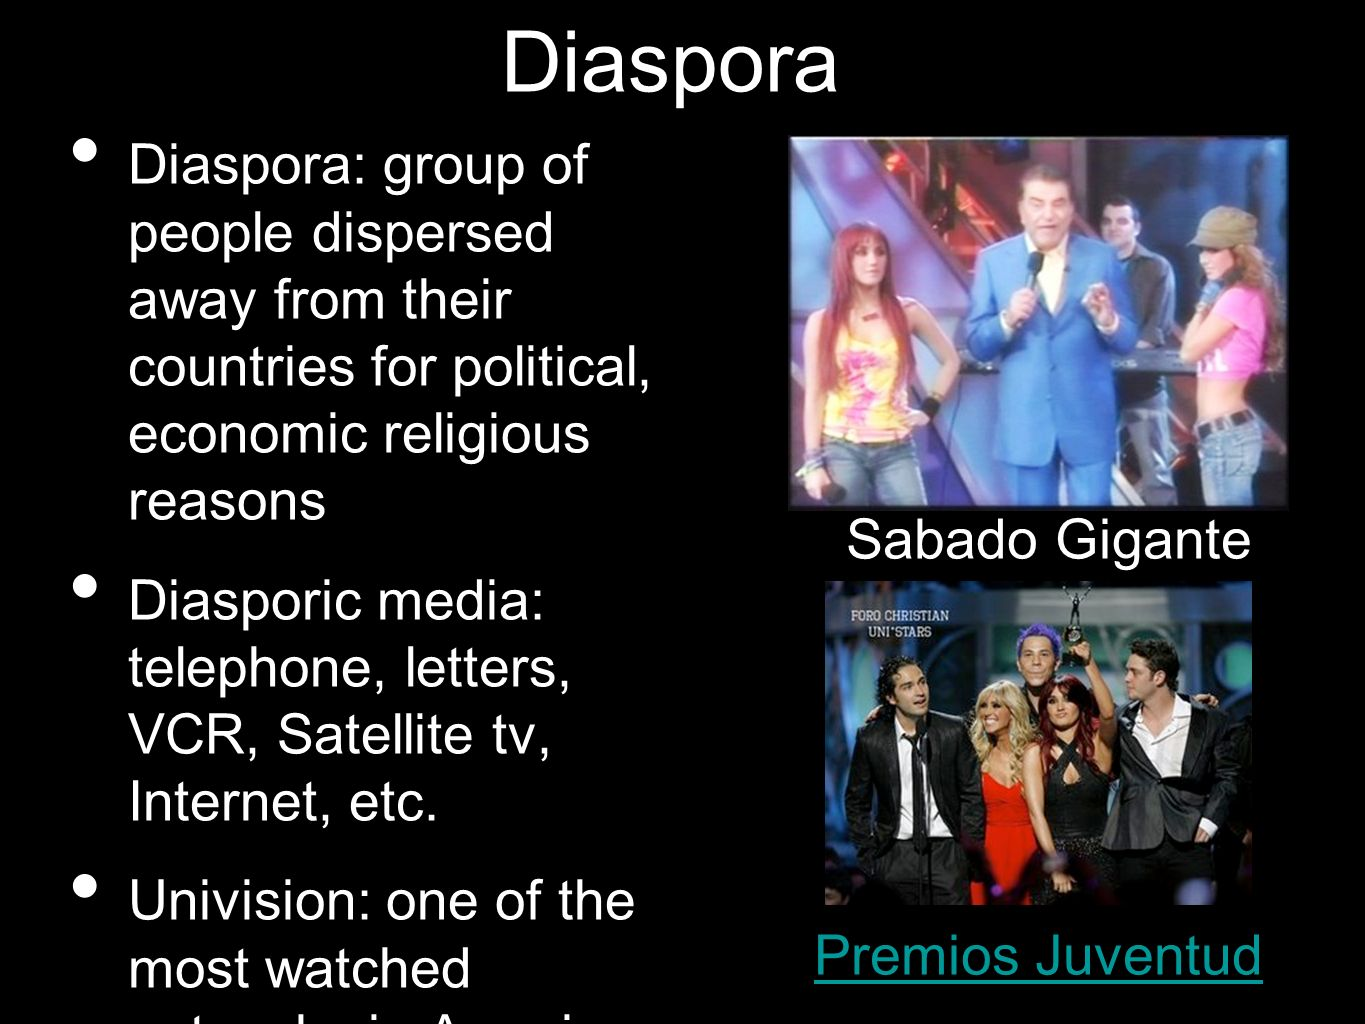 Diaspora Diaspora: group of people dispersed away from their countries for political, economic religious reasons.